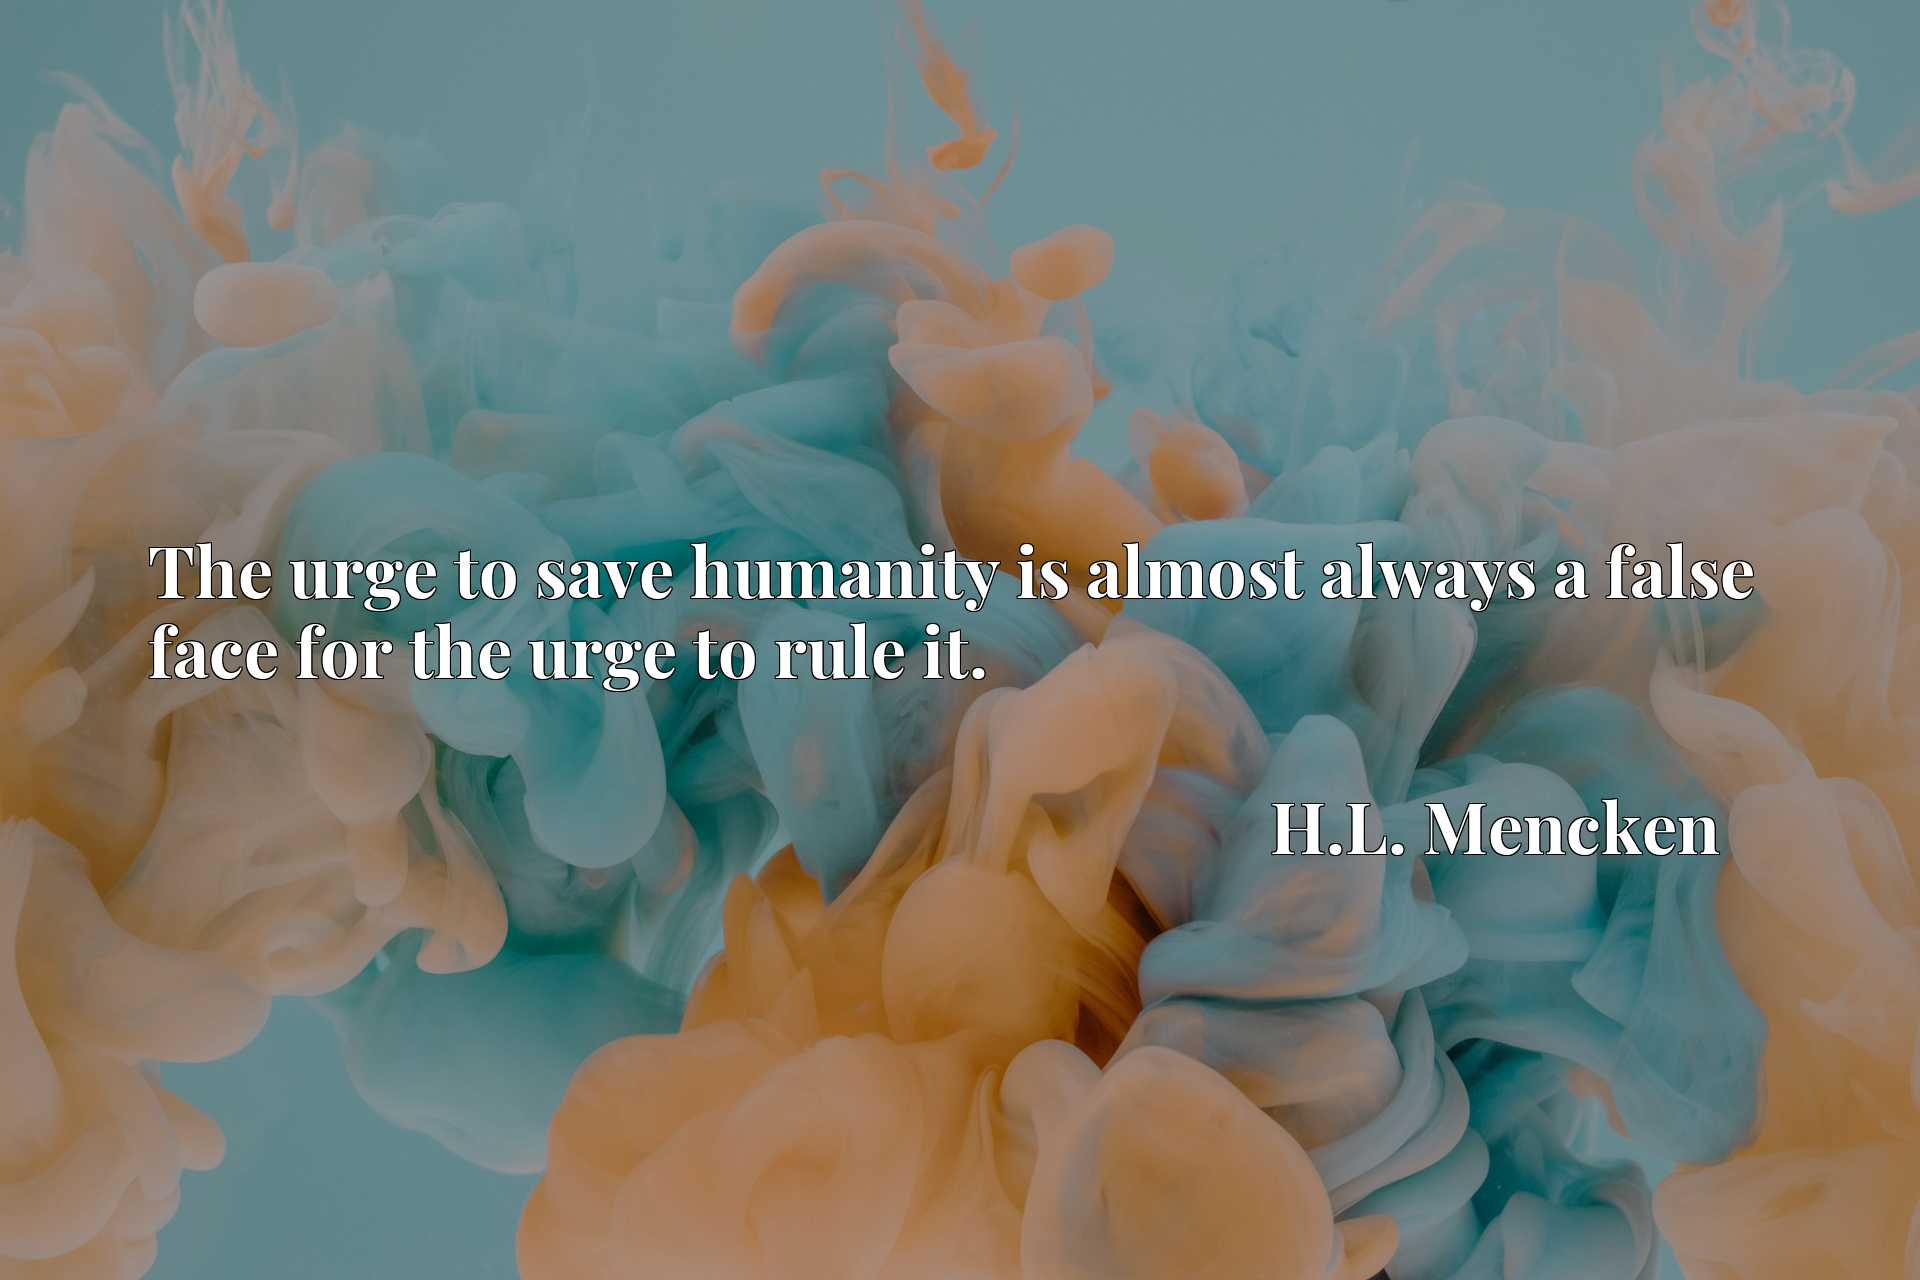 The urge to save humanity is almost always a false face for the urge to rule it.